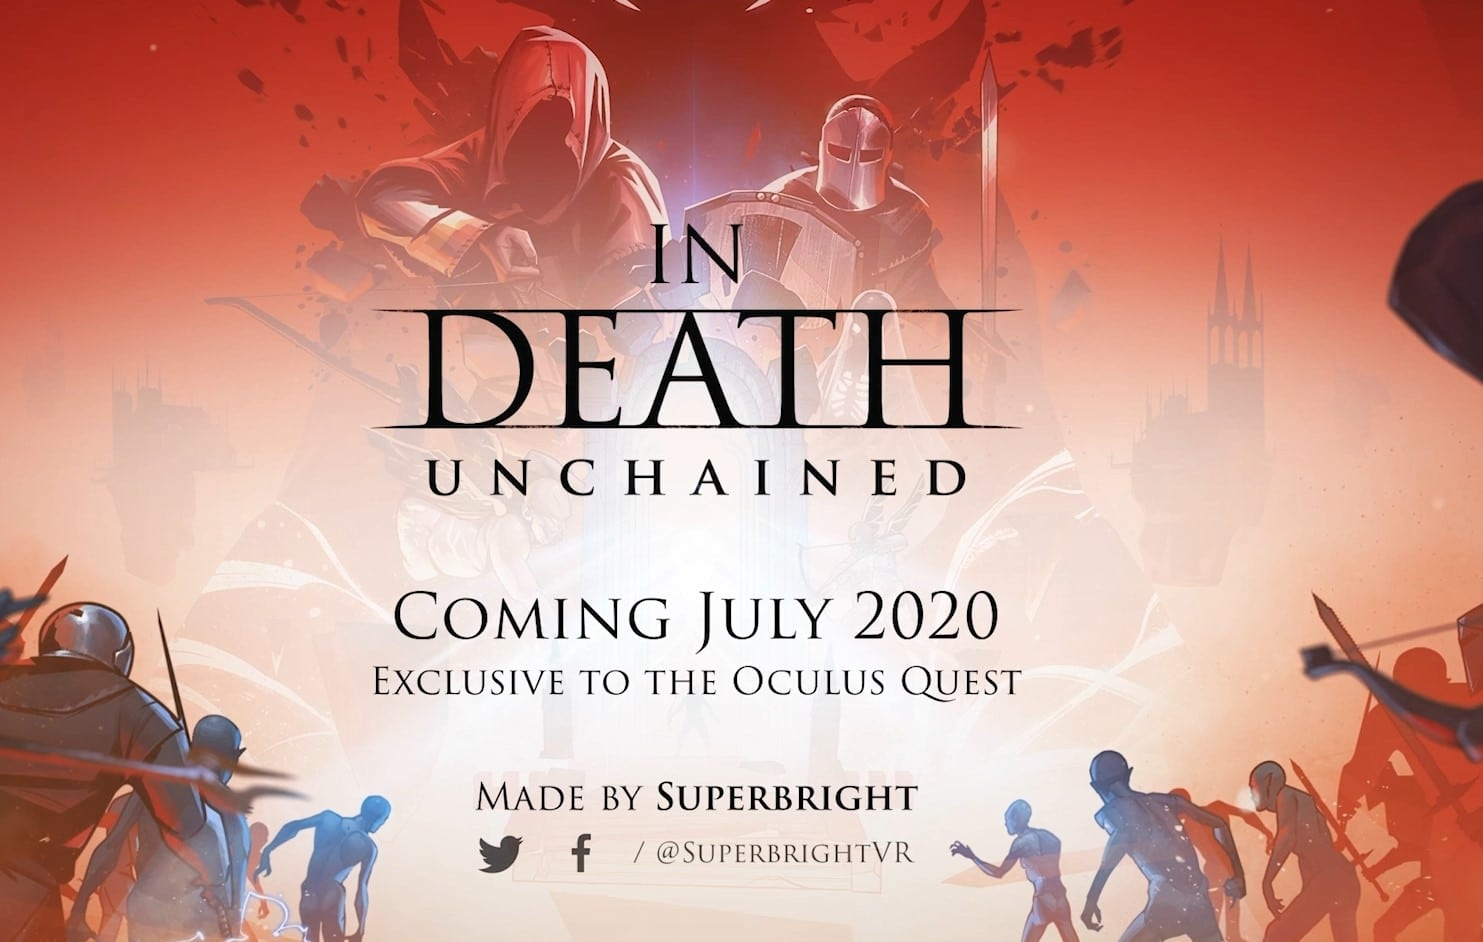 in death unchained featured image info